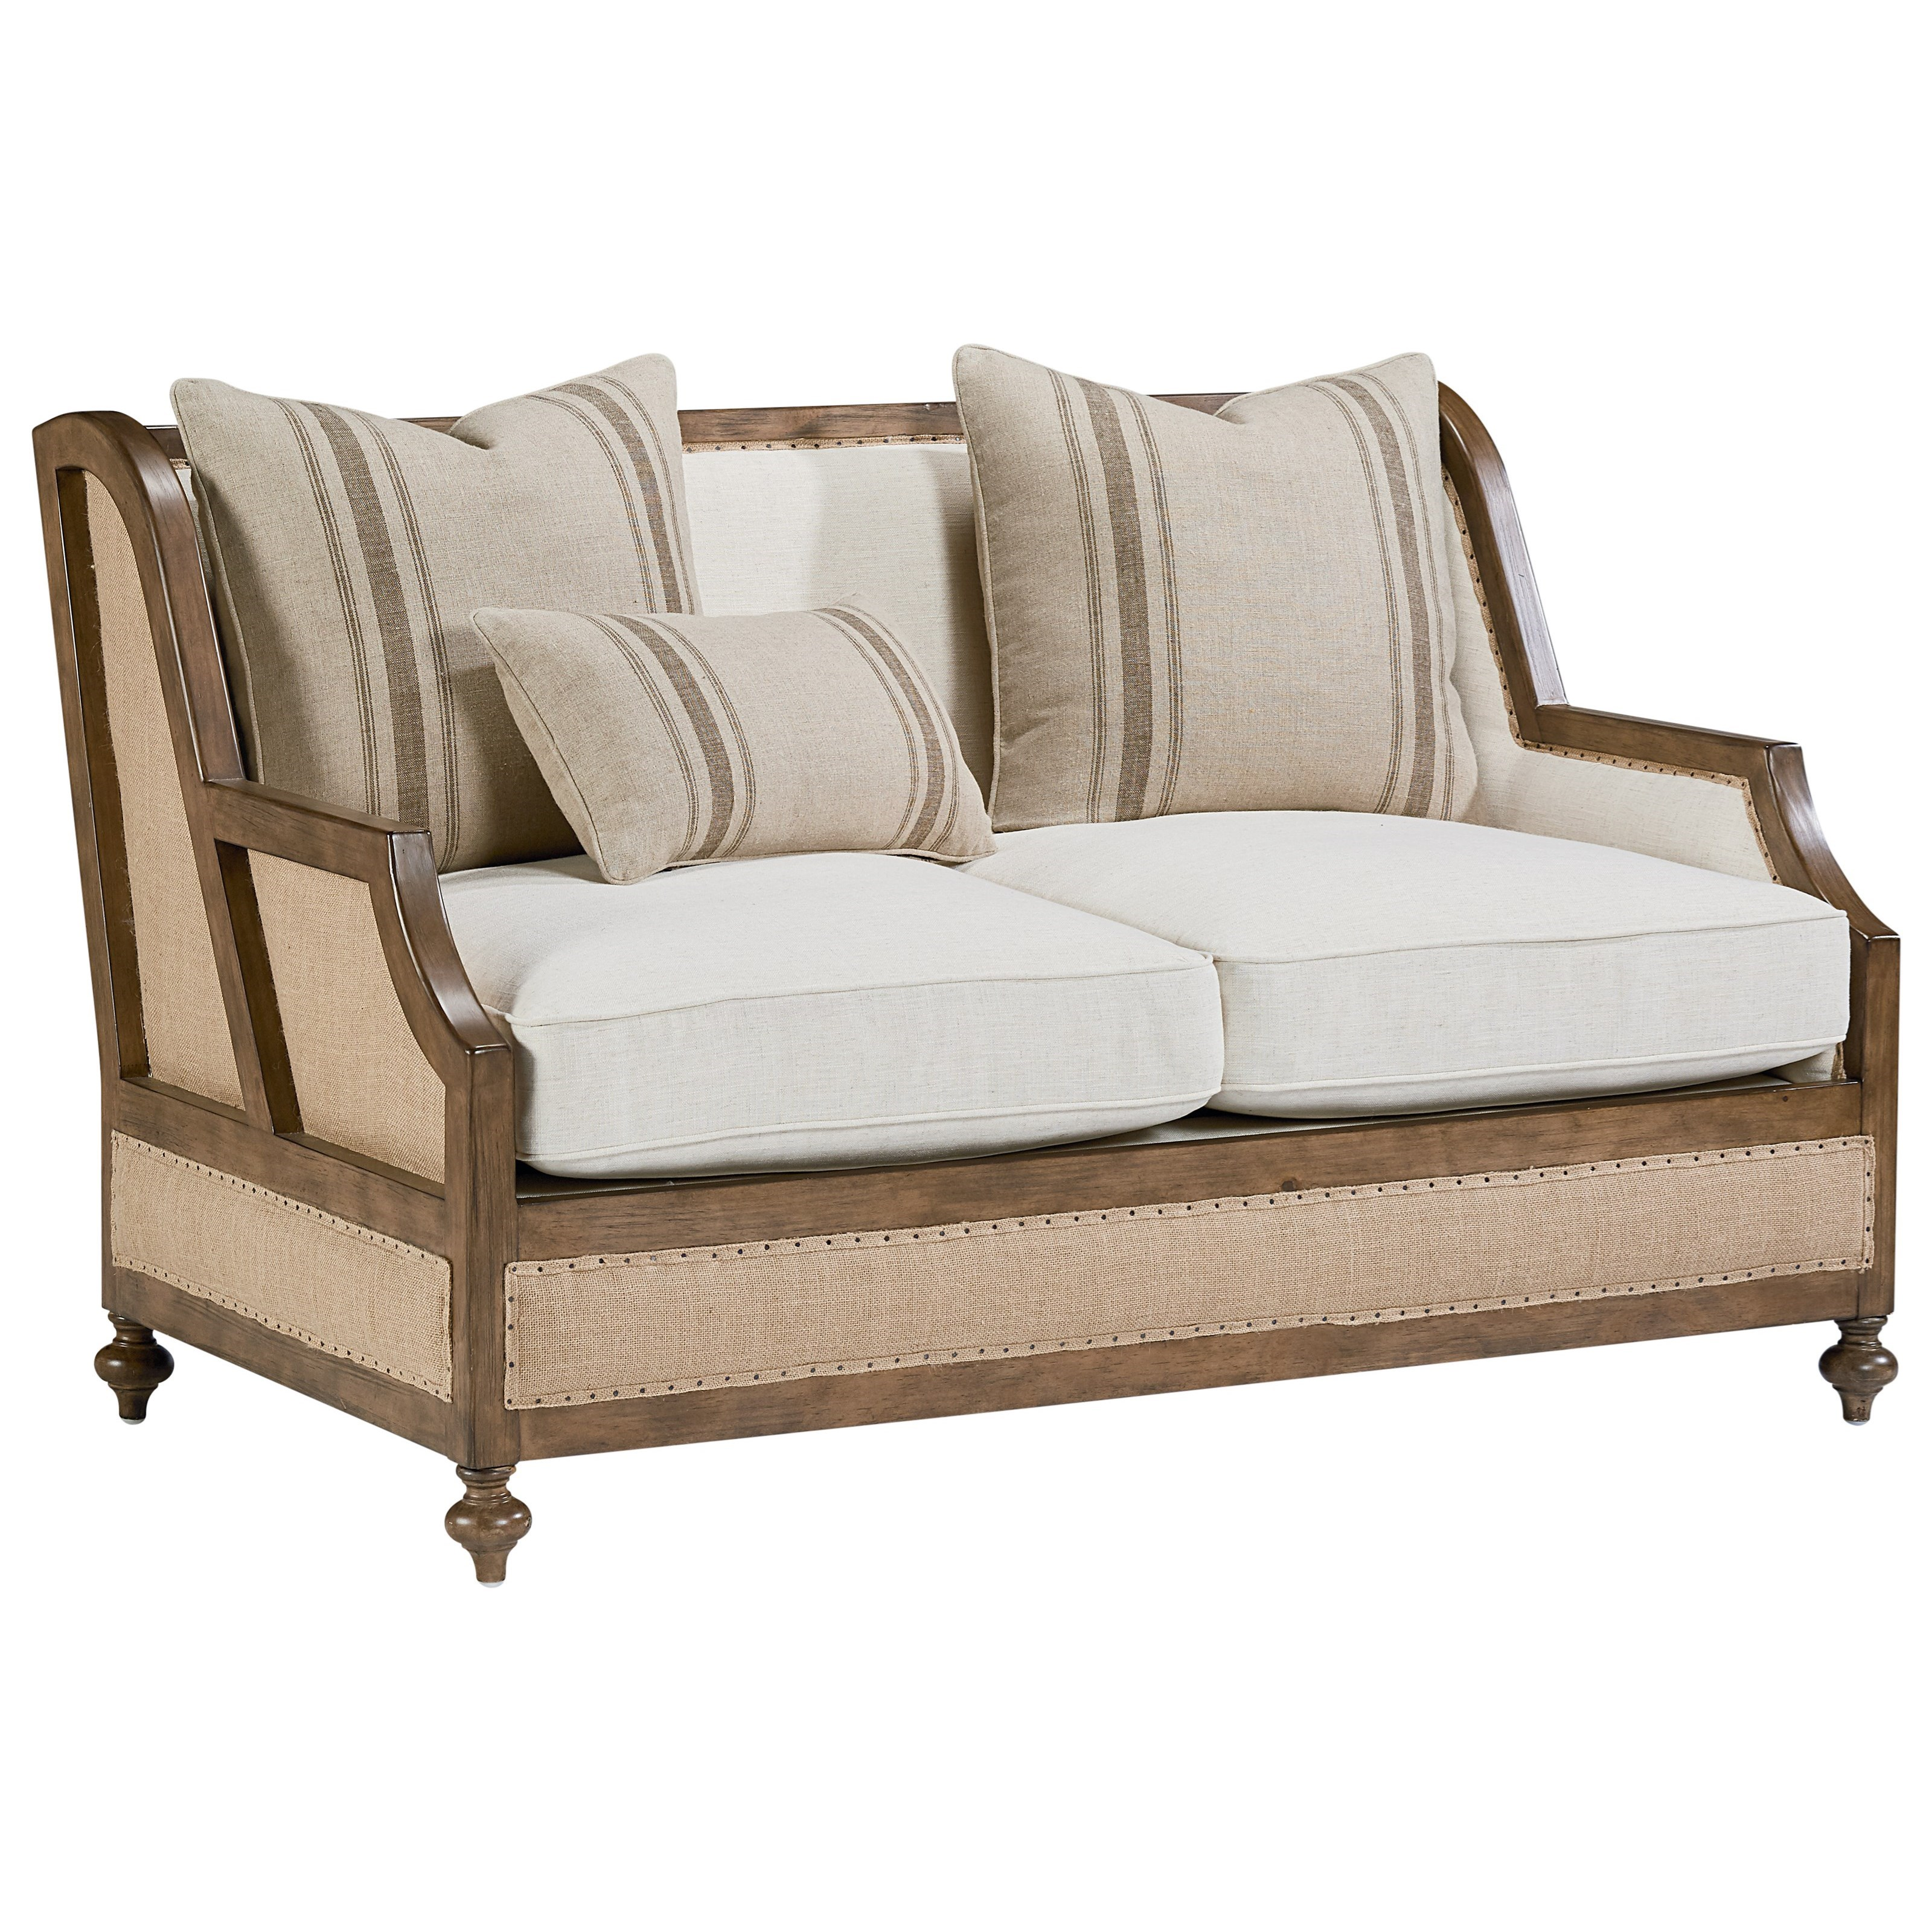 Magnolia Home By Joanna Gaines Foundation Foundation Loveseat With Three Accent Pillows